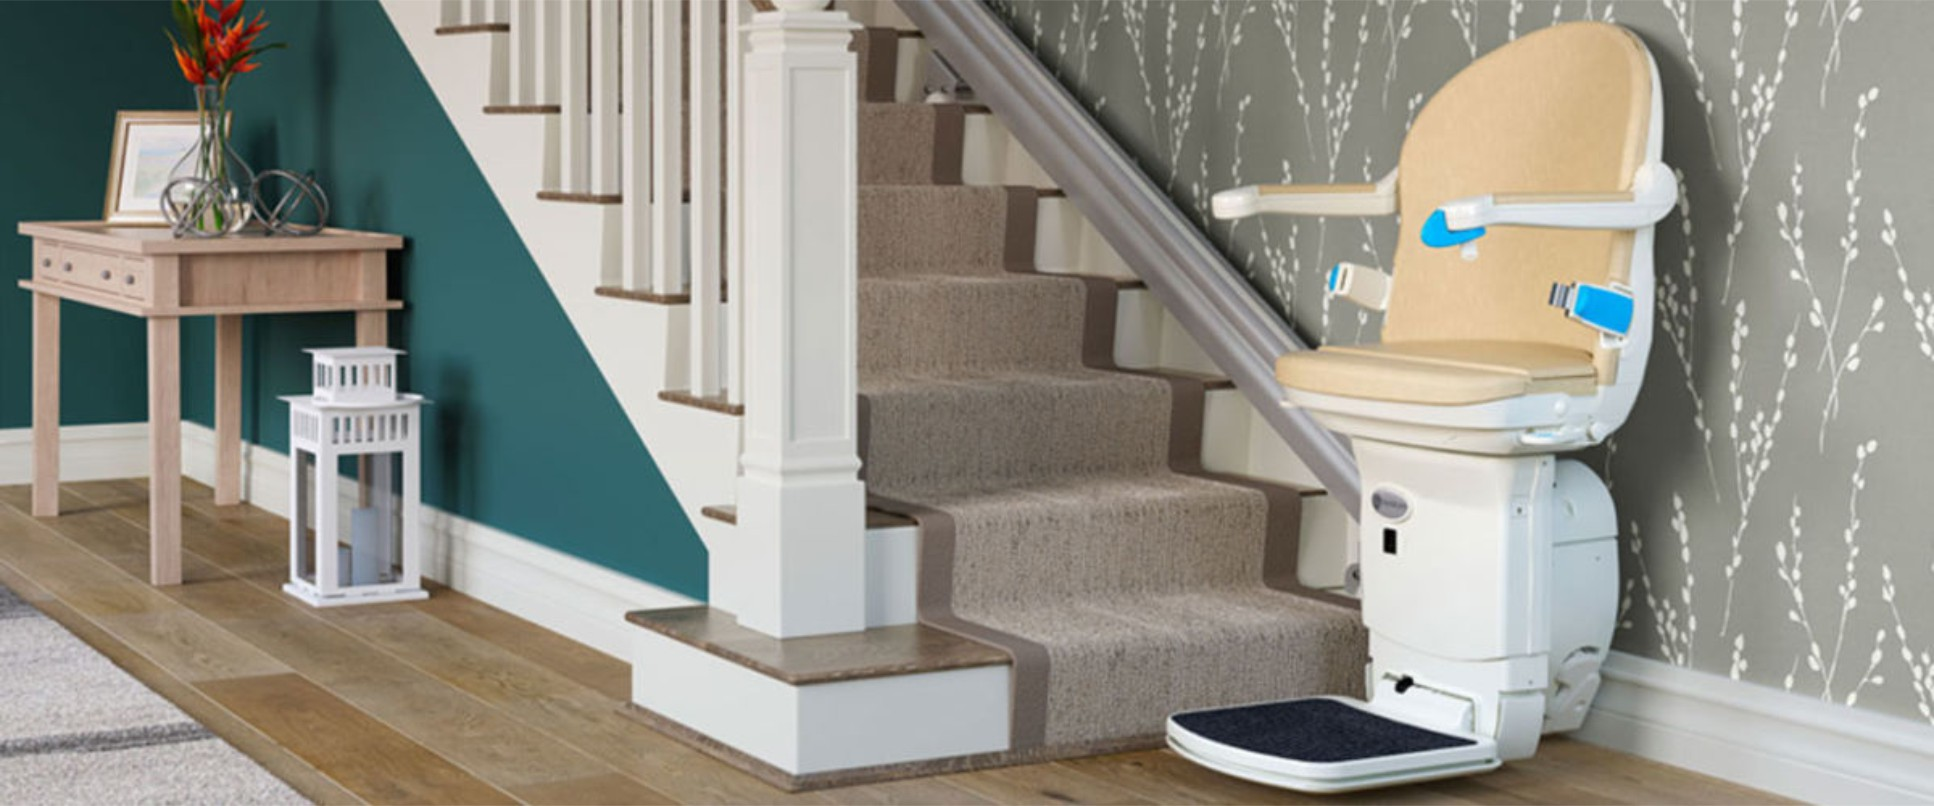 Curved & Straight Stairlift Cost in Newotn Abbot, Totnes, Torquay, Exeter, Plymouth, Devon